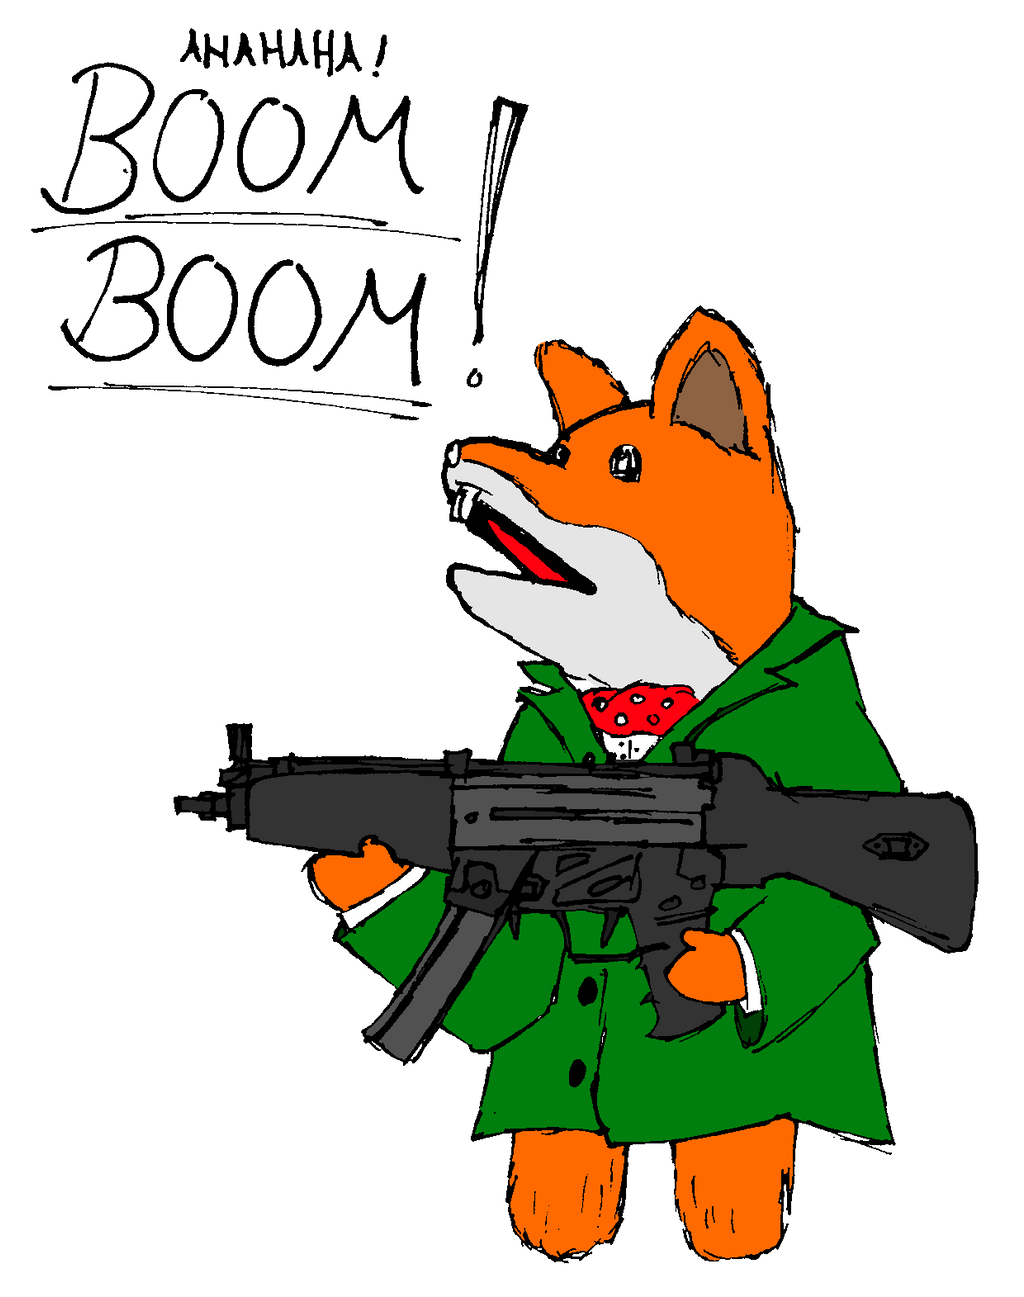 Basil Brush - BOOM BOOM! by michael-brown on DeviantArt